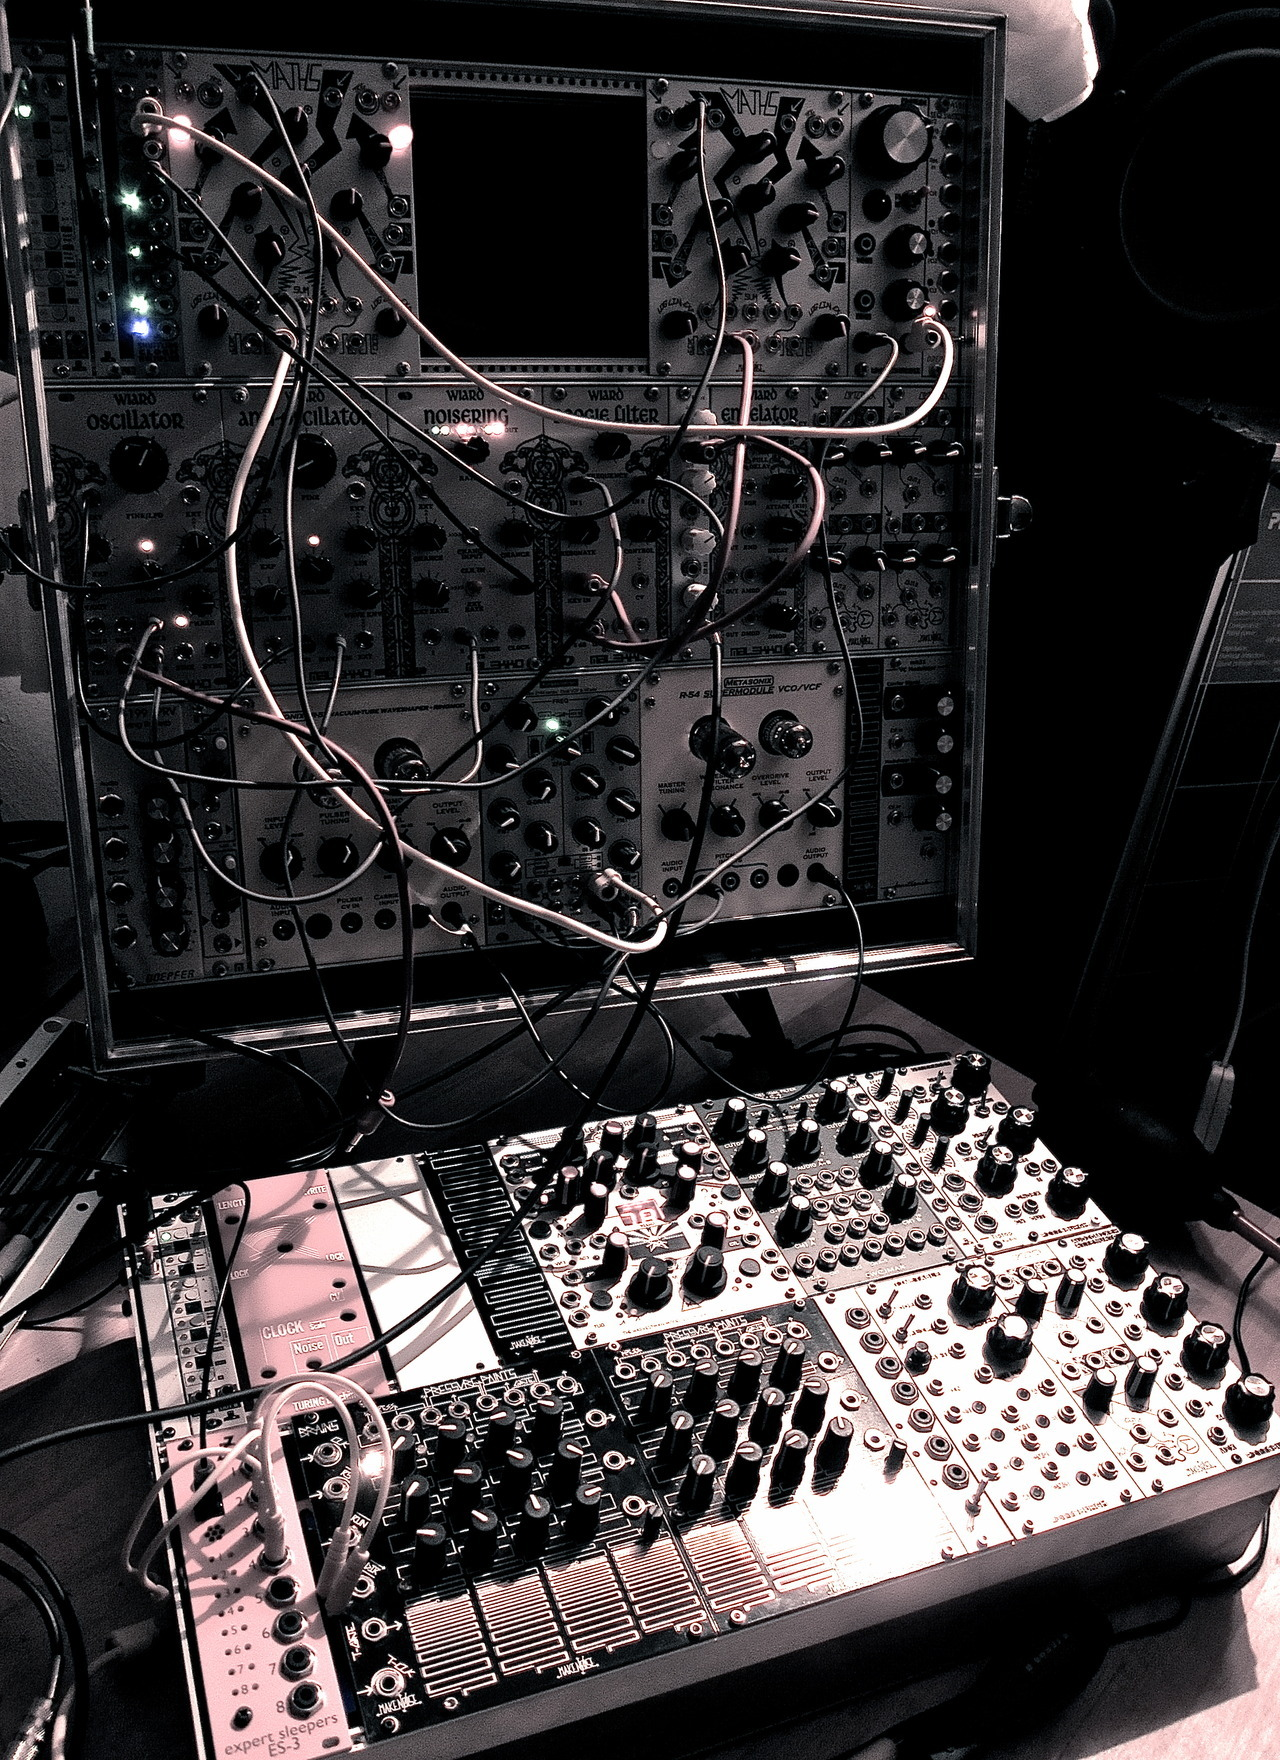 hainbach:  I have re-structered my modular synthesizer to fit better with my workflow. The large whole on top is waiting for sequencer, while the blanks in the lower skiff fill be replaced with a wavetable osc. I have now all the parts for a Turing machine, maybe I will get that done tomorrow.